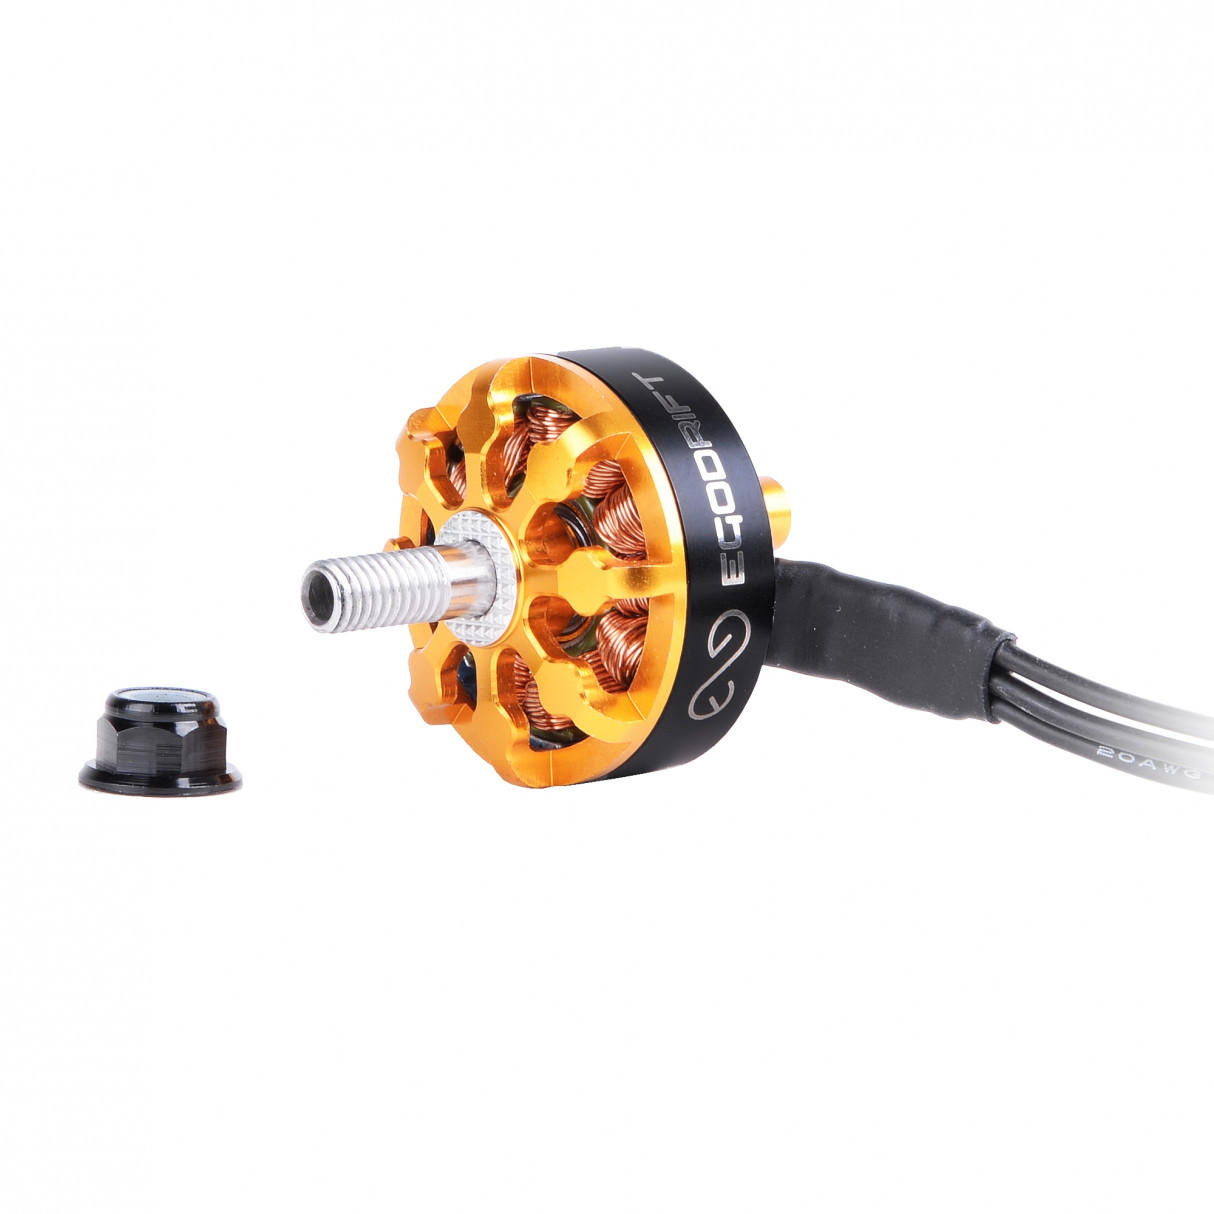 EGODRIFT ATOM BO MB BABY GOLD EDITION 2306 1700/2400 / 2700KV Motor Sin escobillas para RC Drone FPV Racing